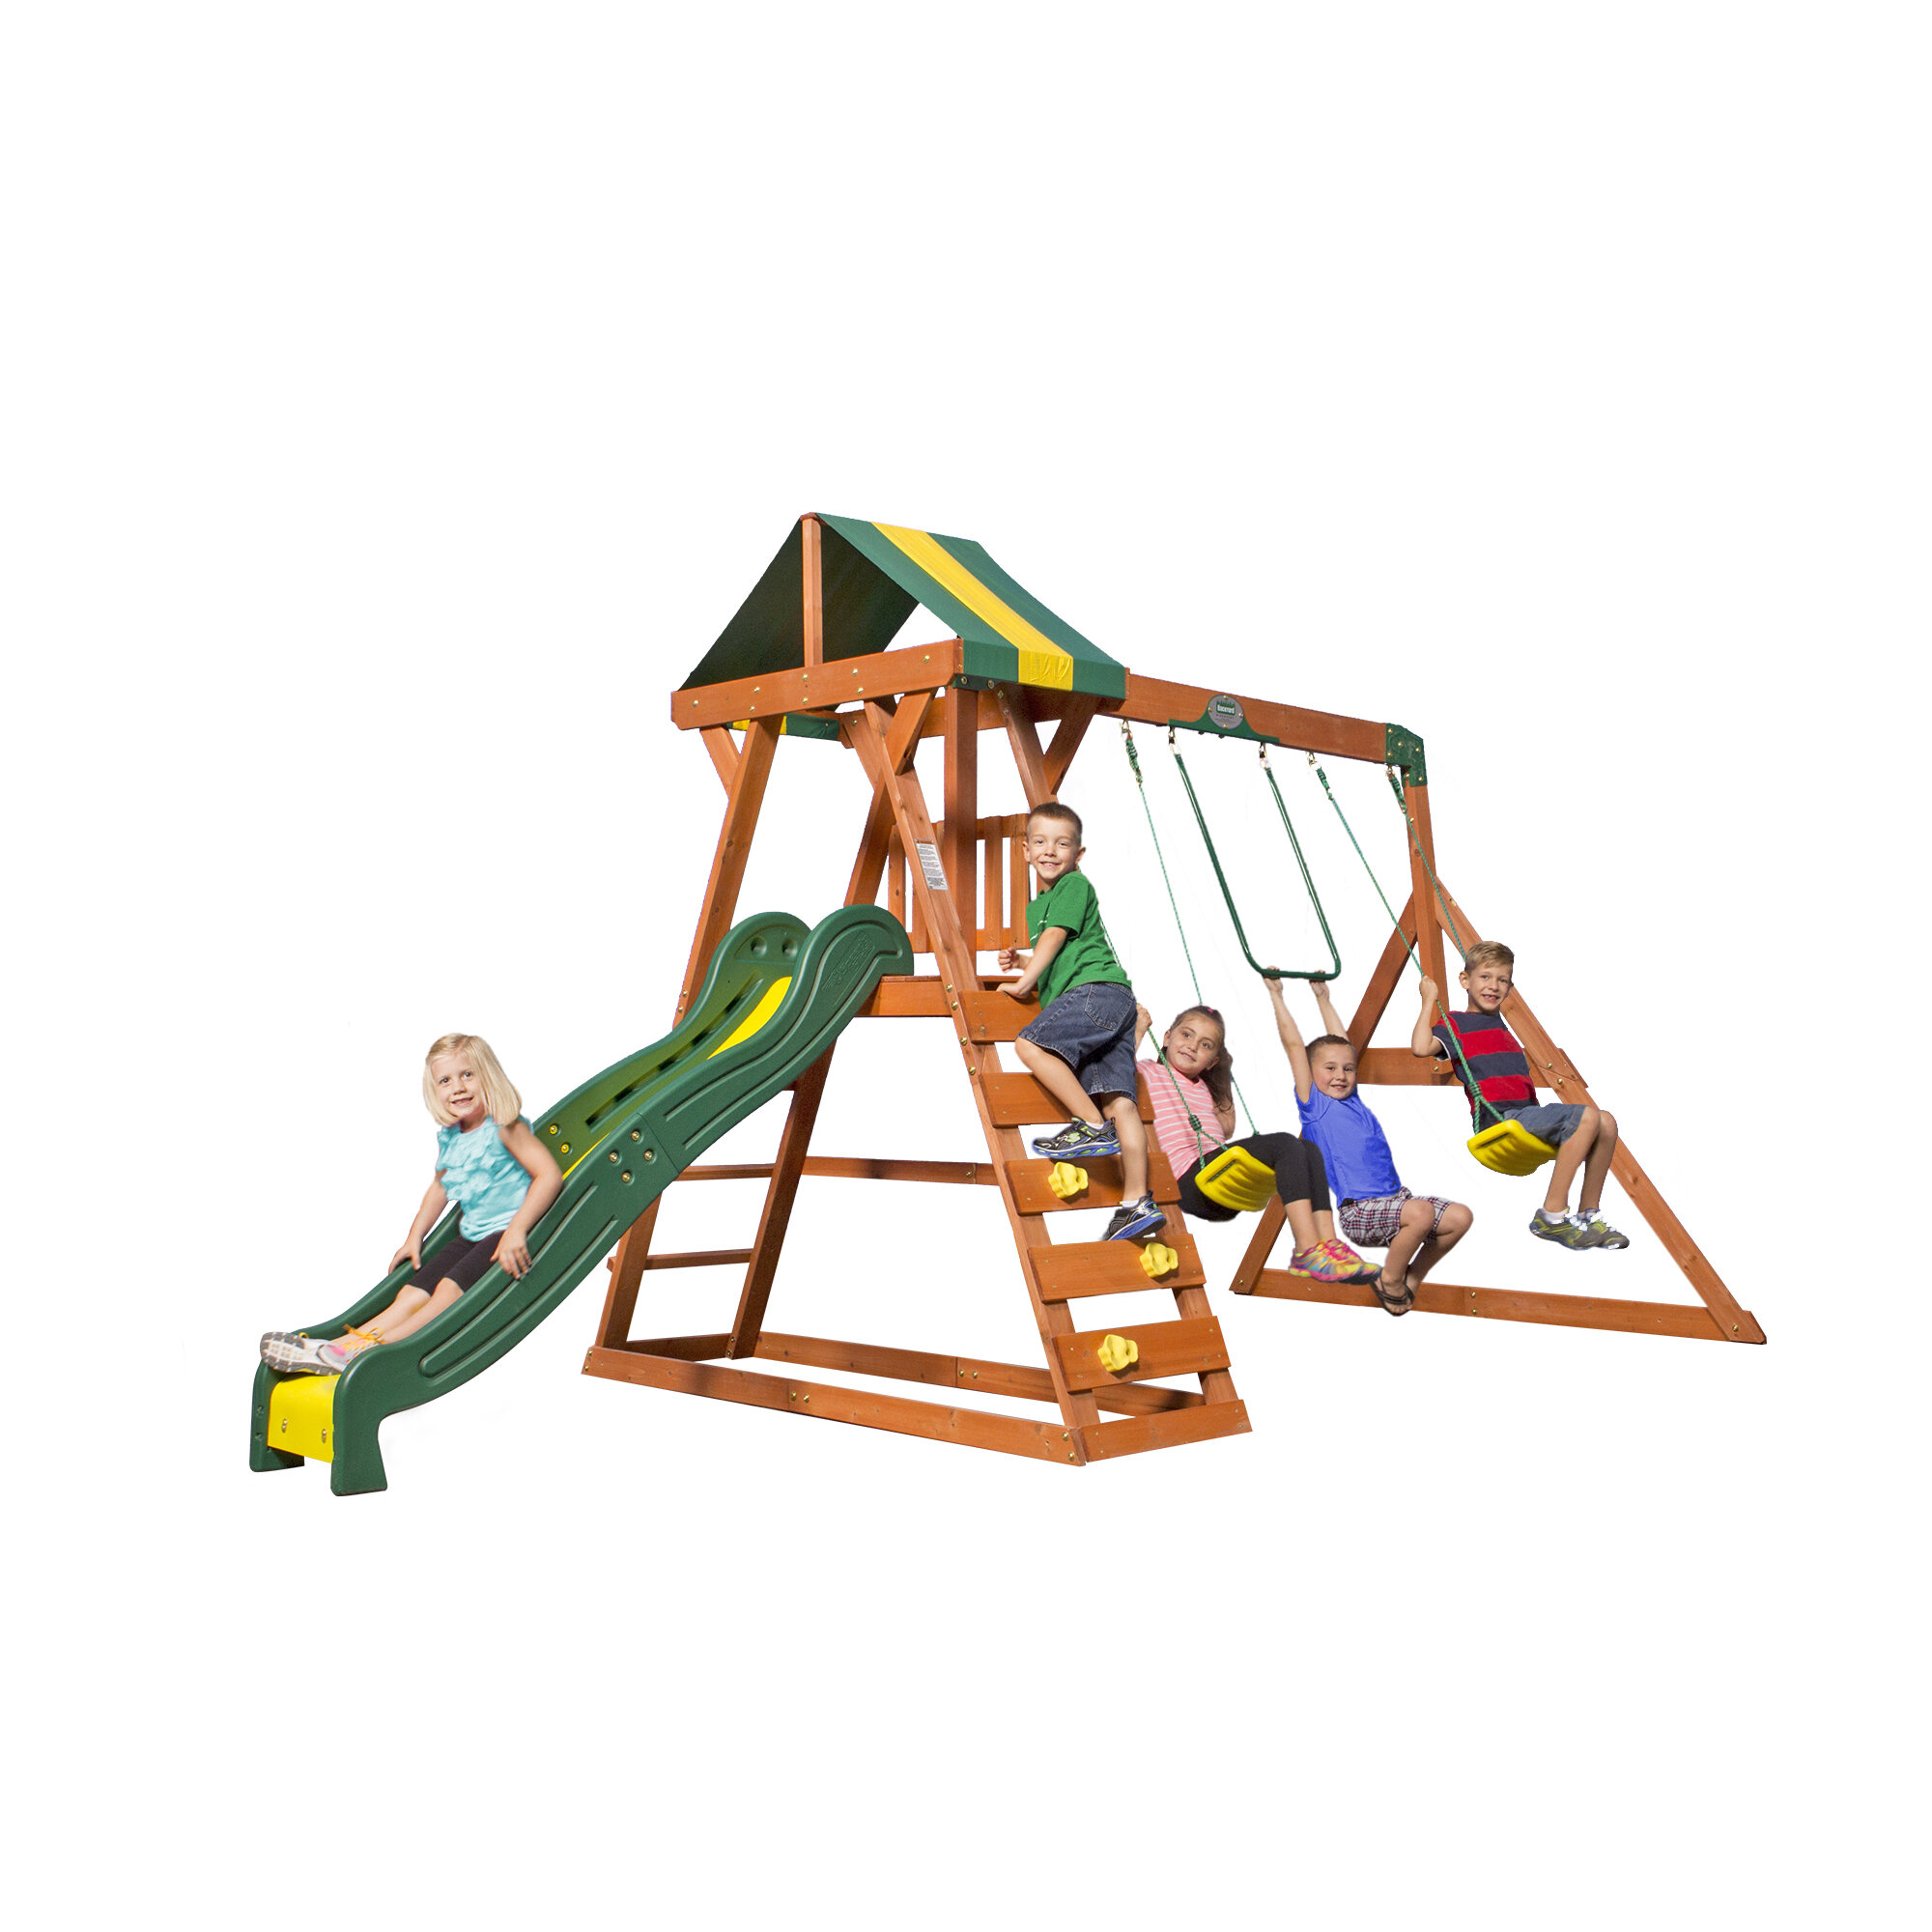 wood bj home s club decor set of swing profileid from idea beautiful elegant id backyard wholesale discovery somerset imageservice